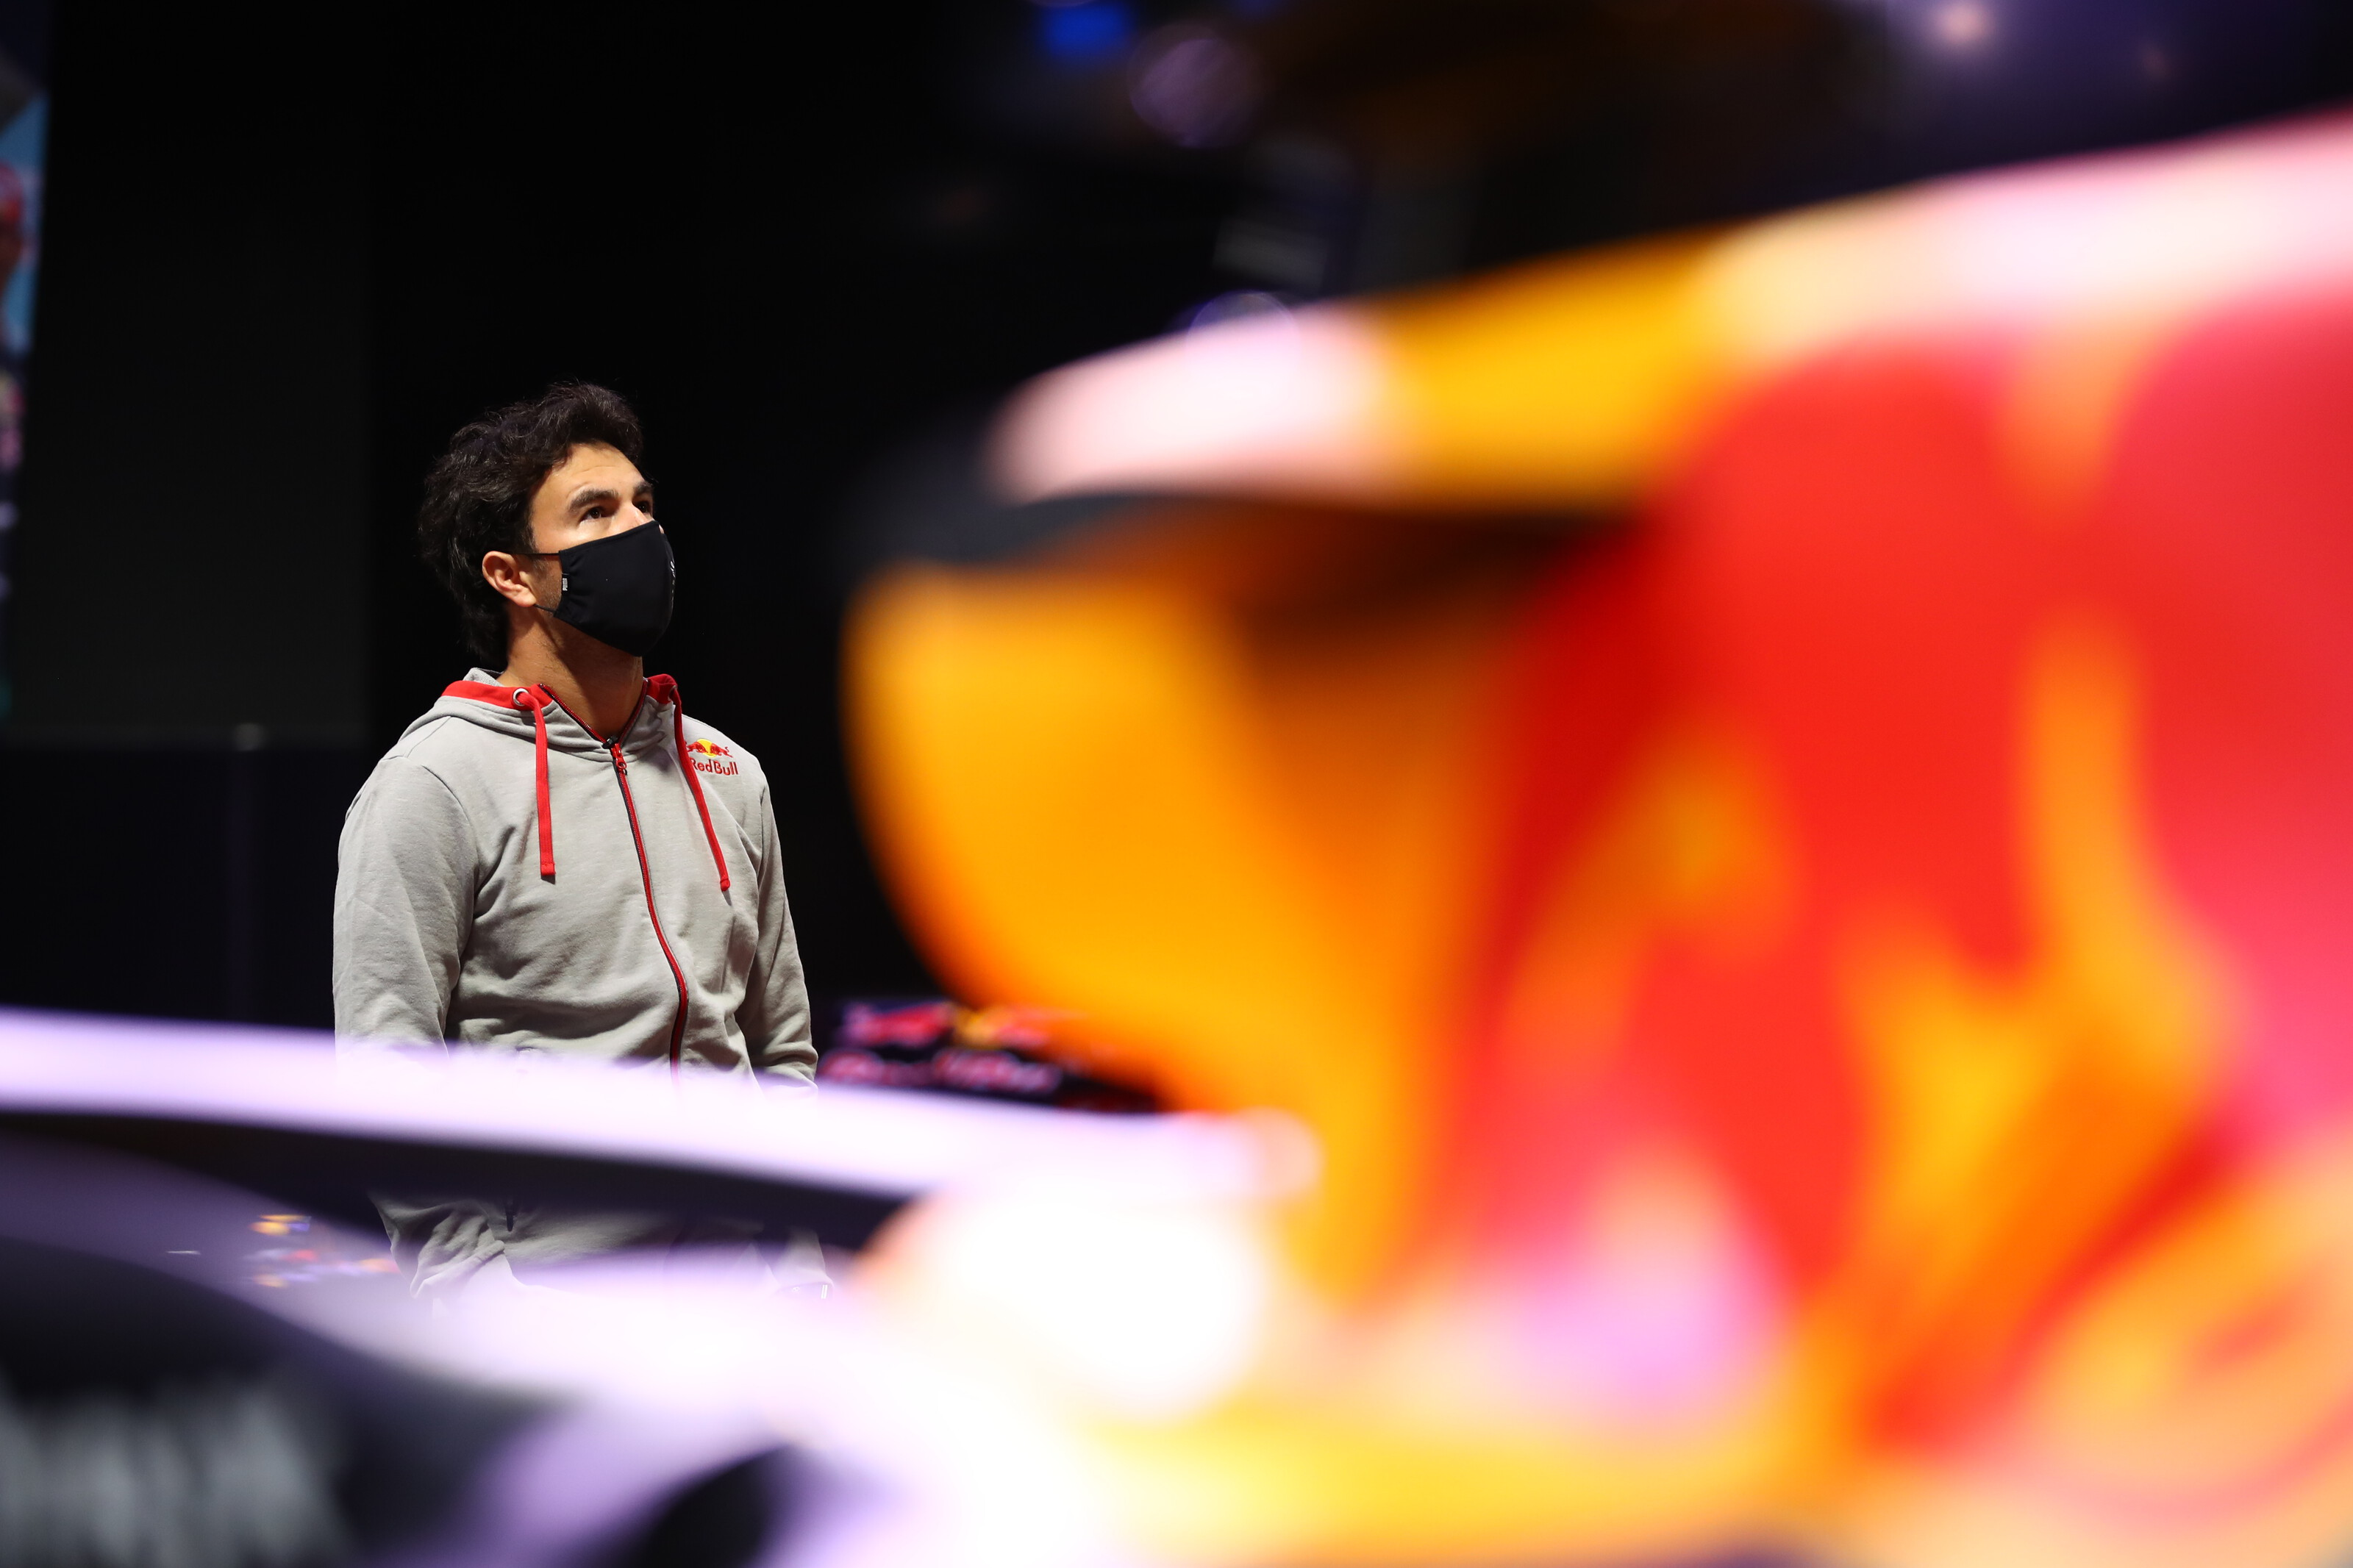 Fotó: Getty Images / Red Bull Content Pool